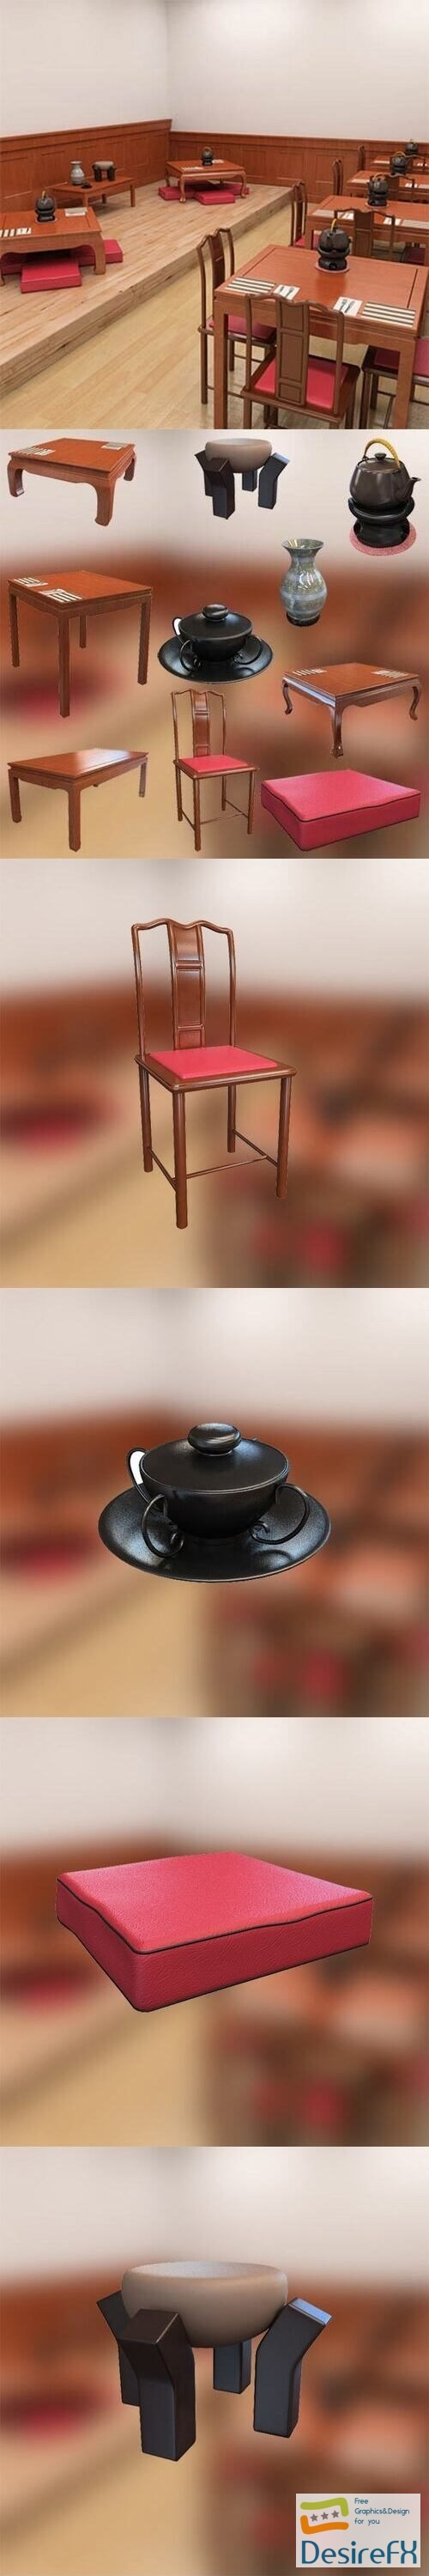 Chinese Interior Cafe 3D Model